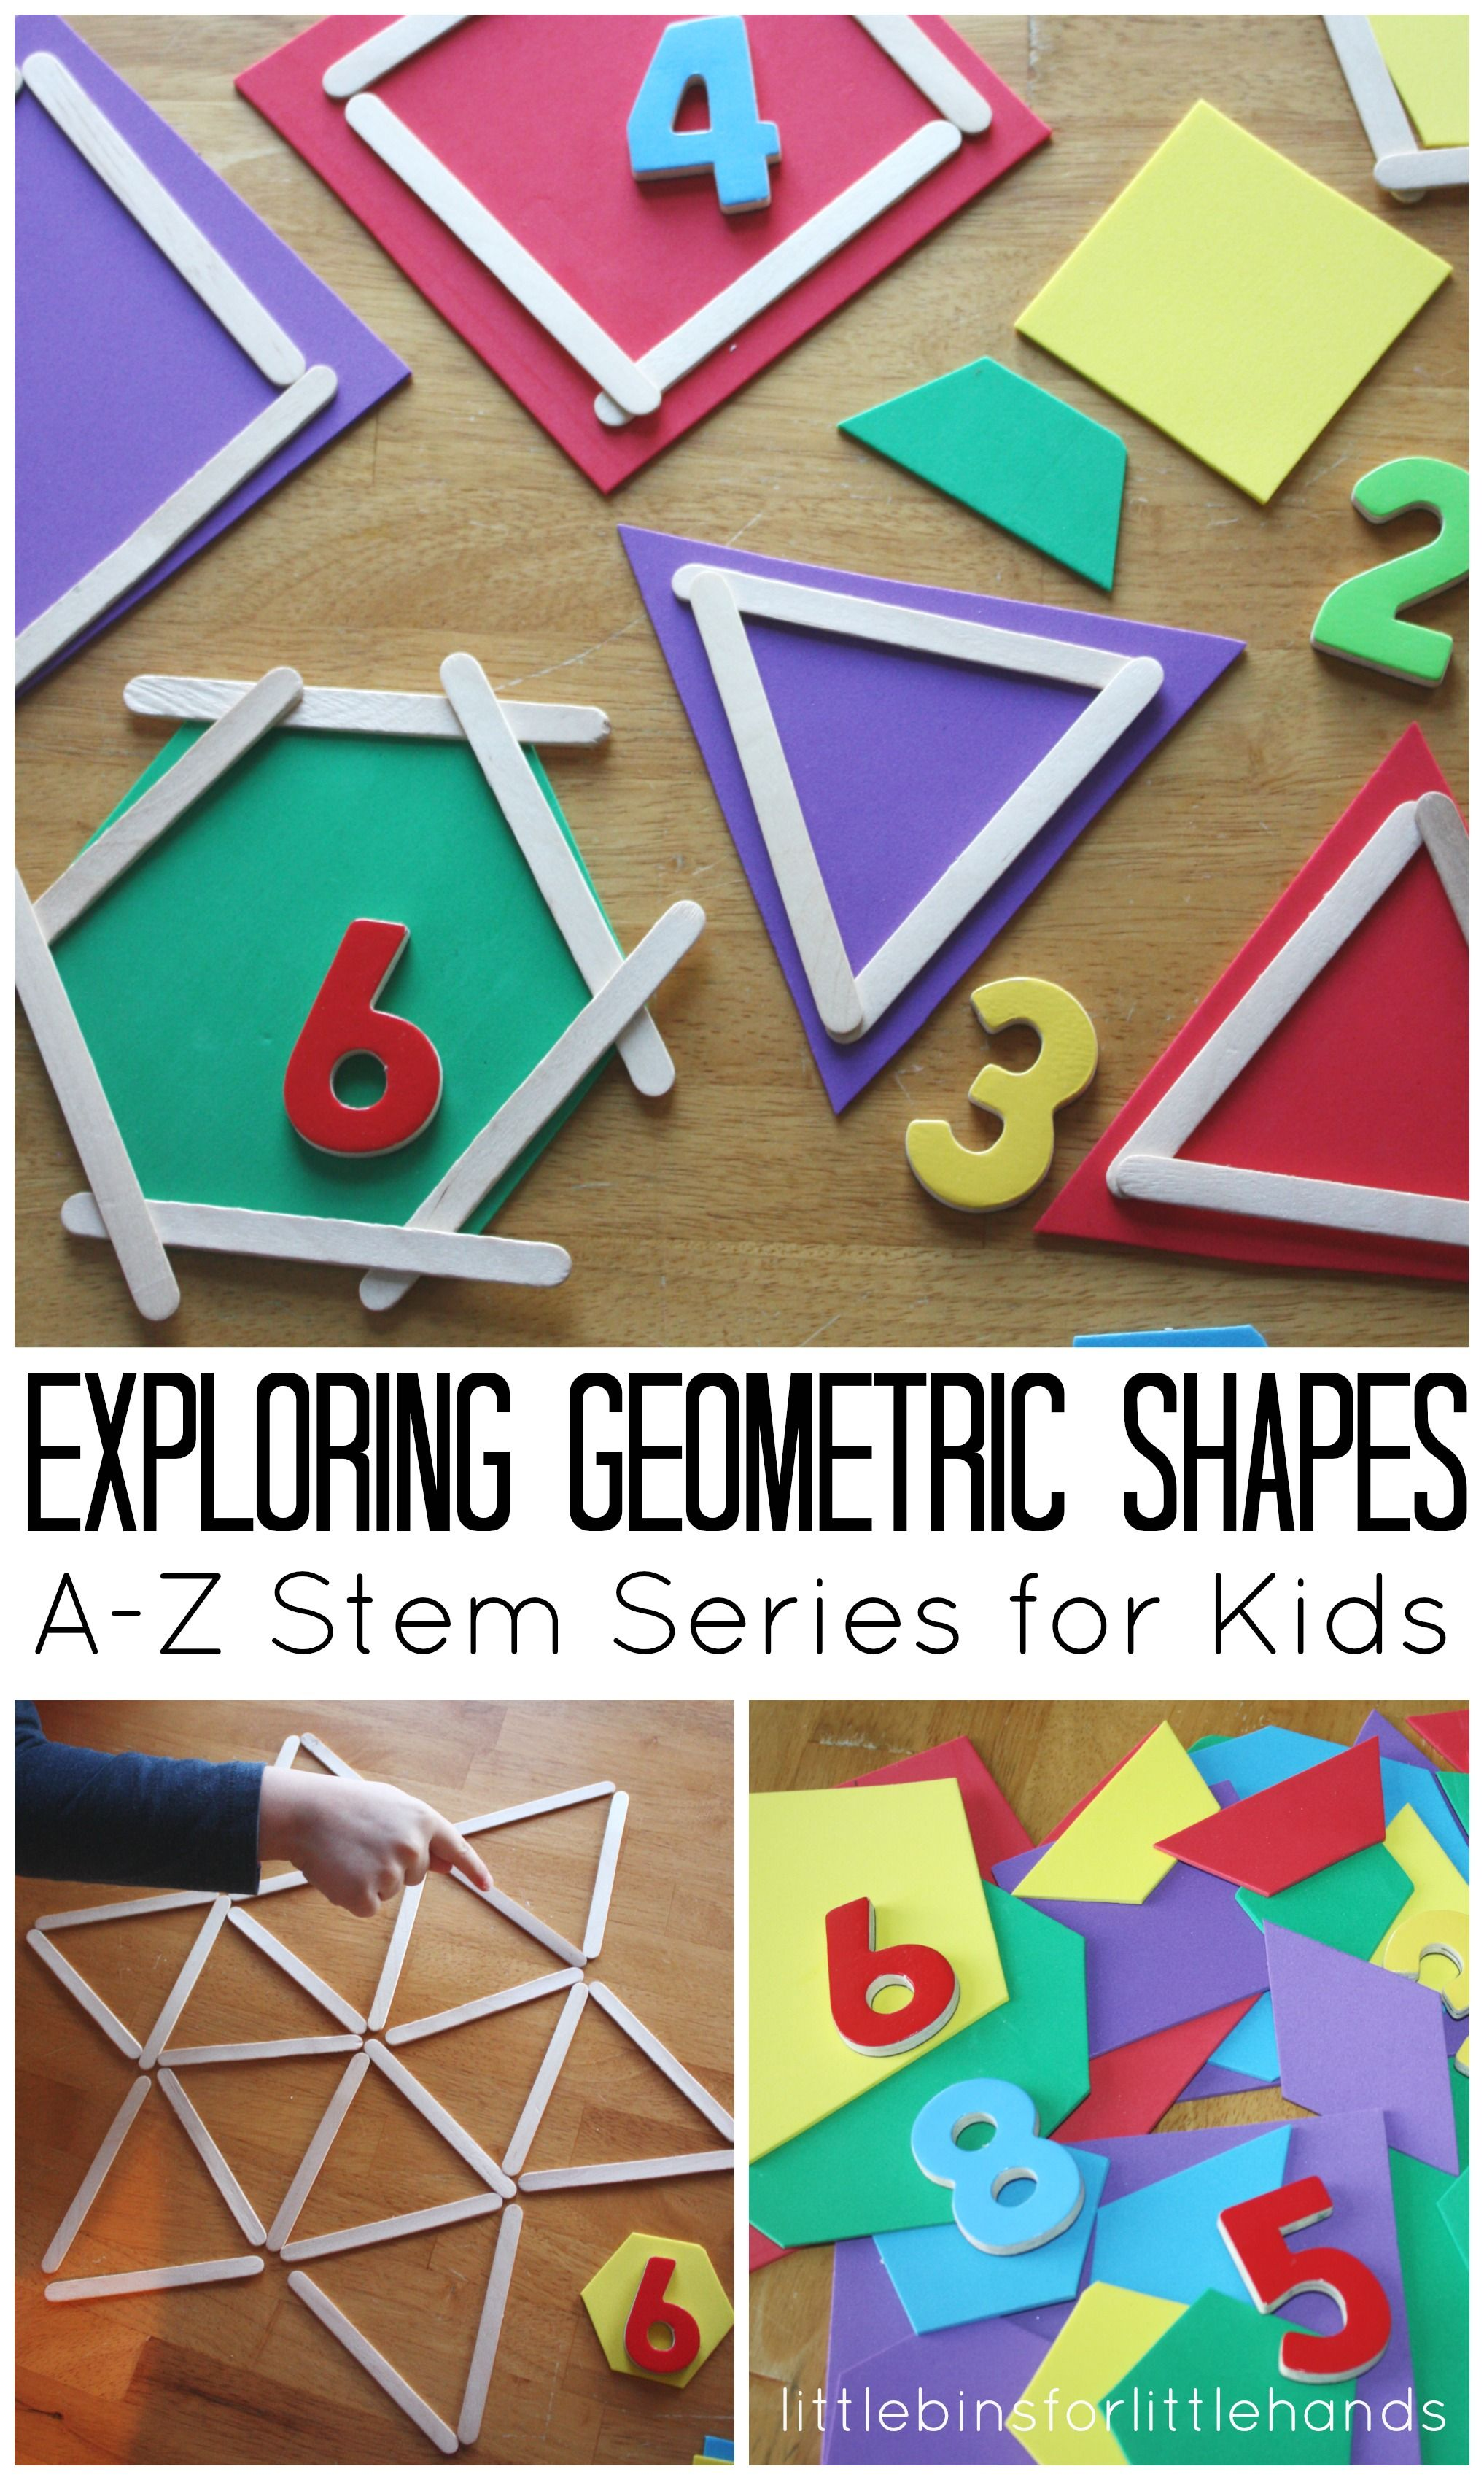 Geometric Shapes Activity Math and STEM Ideas for Kids | Pinterest ...